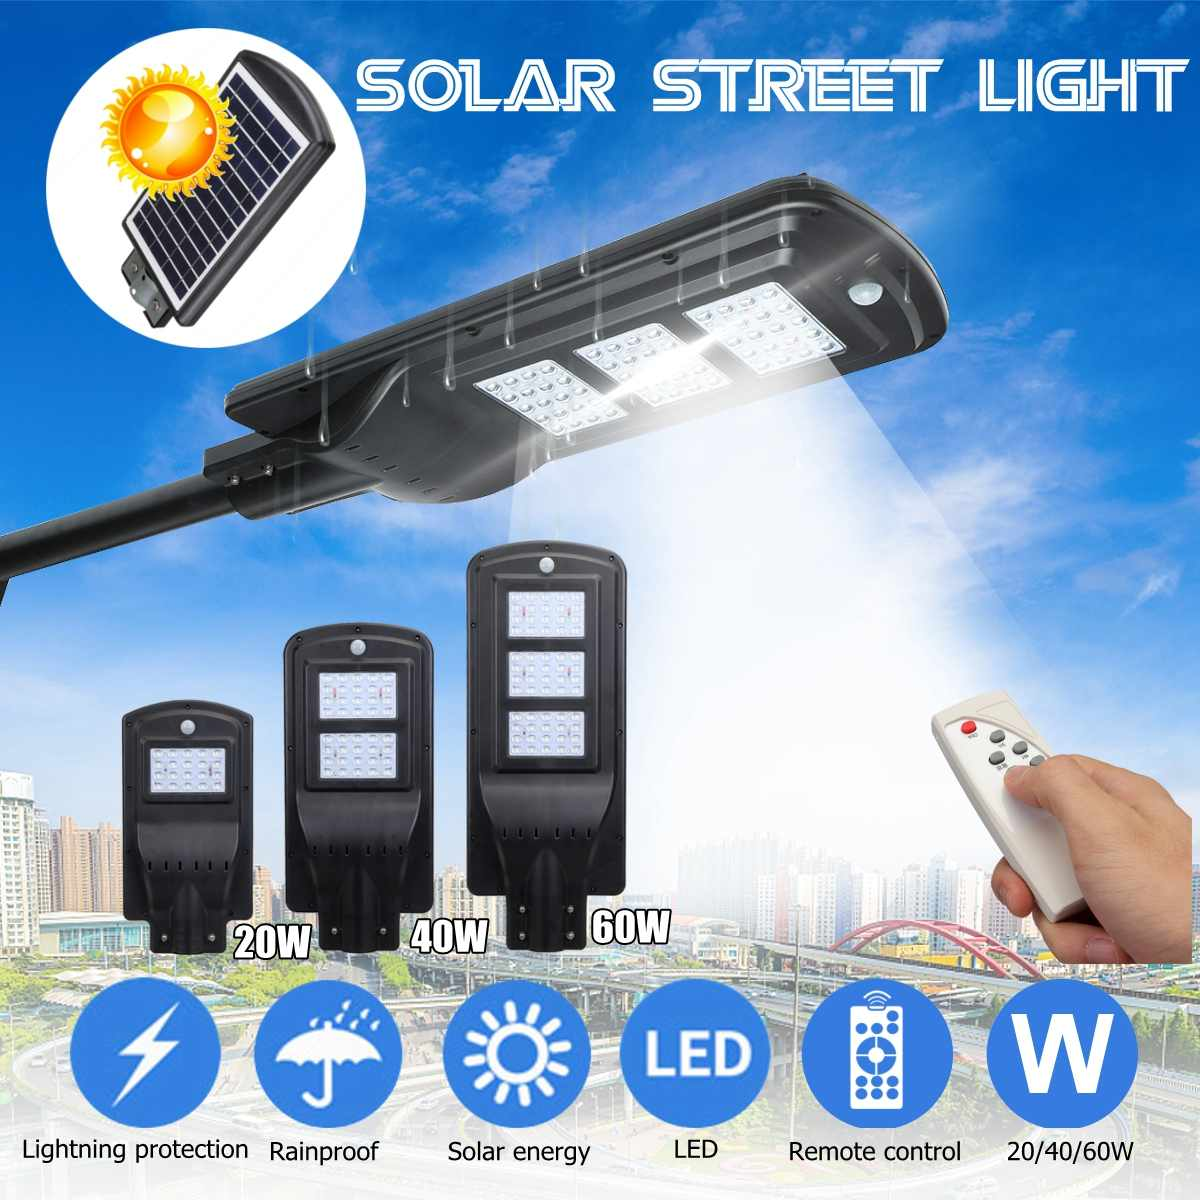 20/40/60W Solar Powered LED Wall Street Light Outdoor Solar Lamp With Remote Control Residential House outdoor light ning